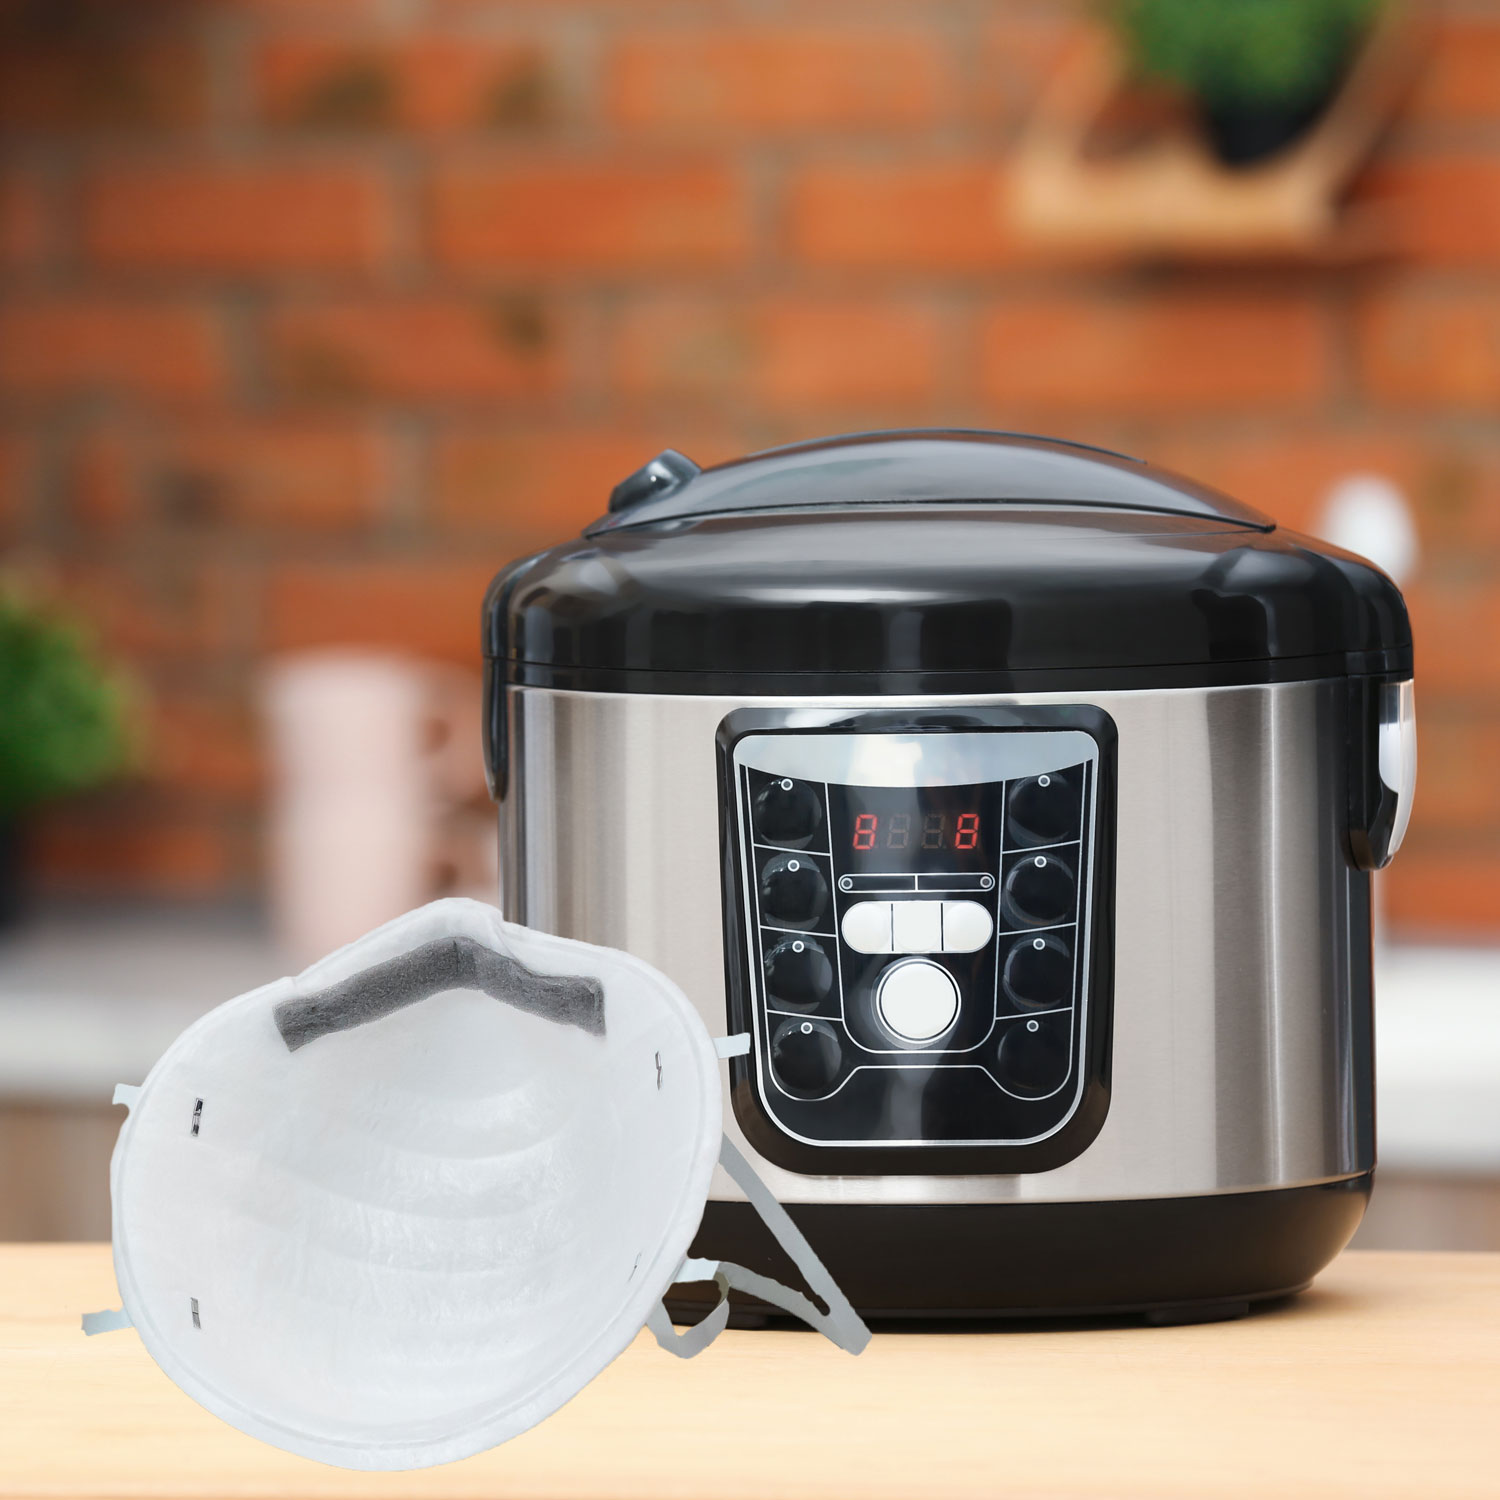 N95 Face Mask and Instant Pot